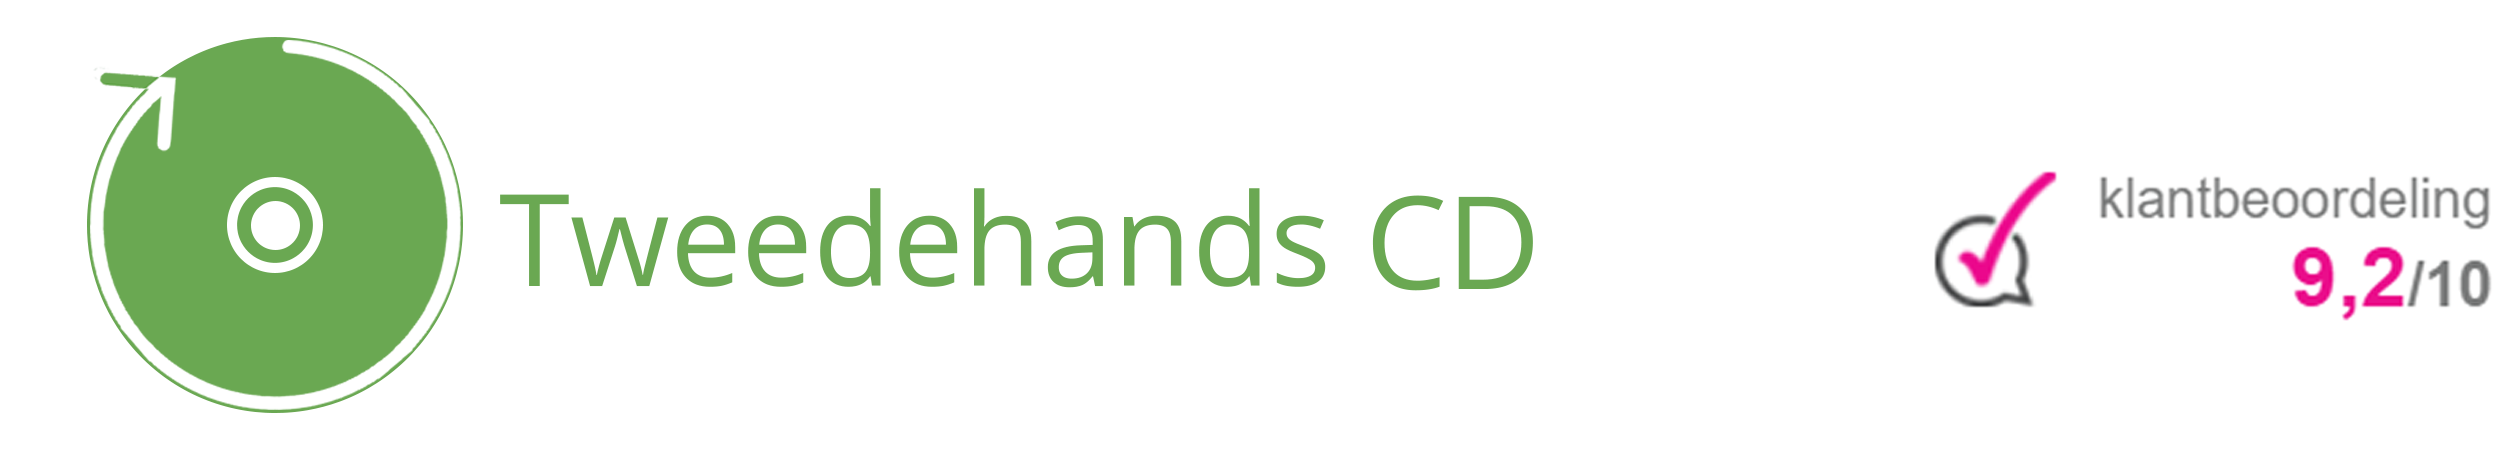 Tweedehands CD logo